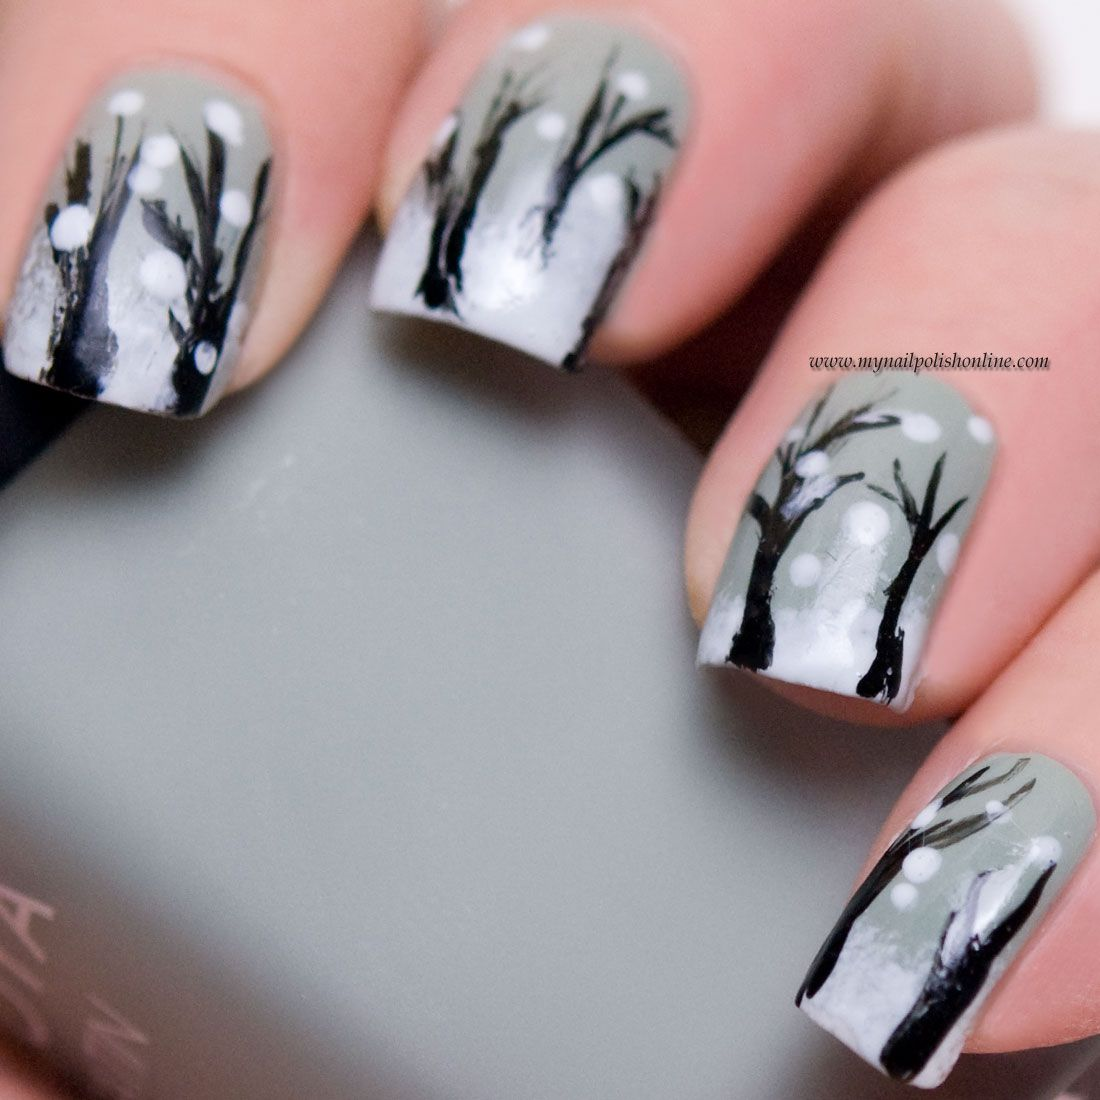 Nothing Adds An Air Of Mystery And Intrigue Quite Like The: Winter Nail Art - It's Snowing In The Woods